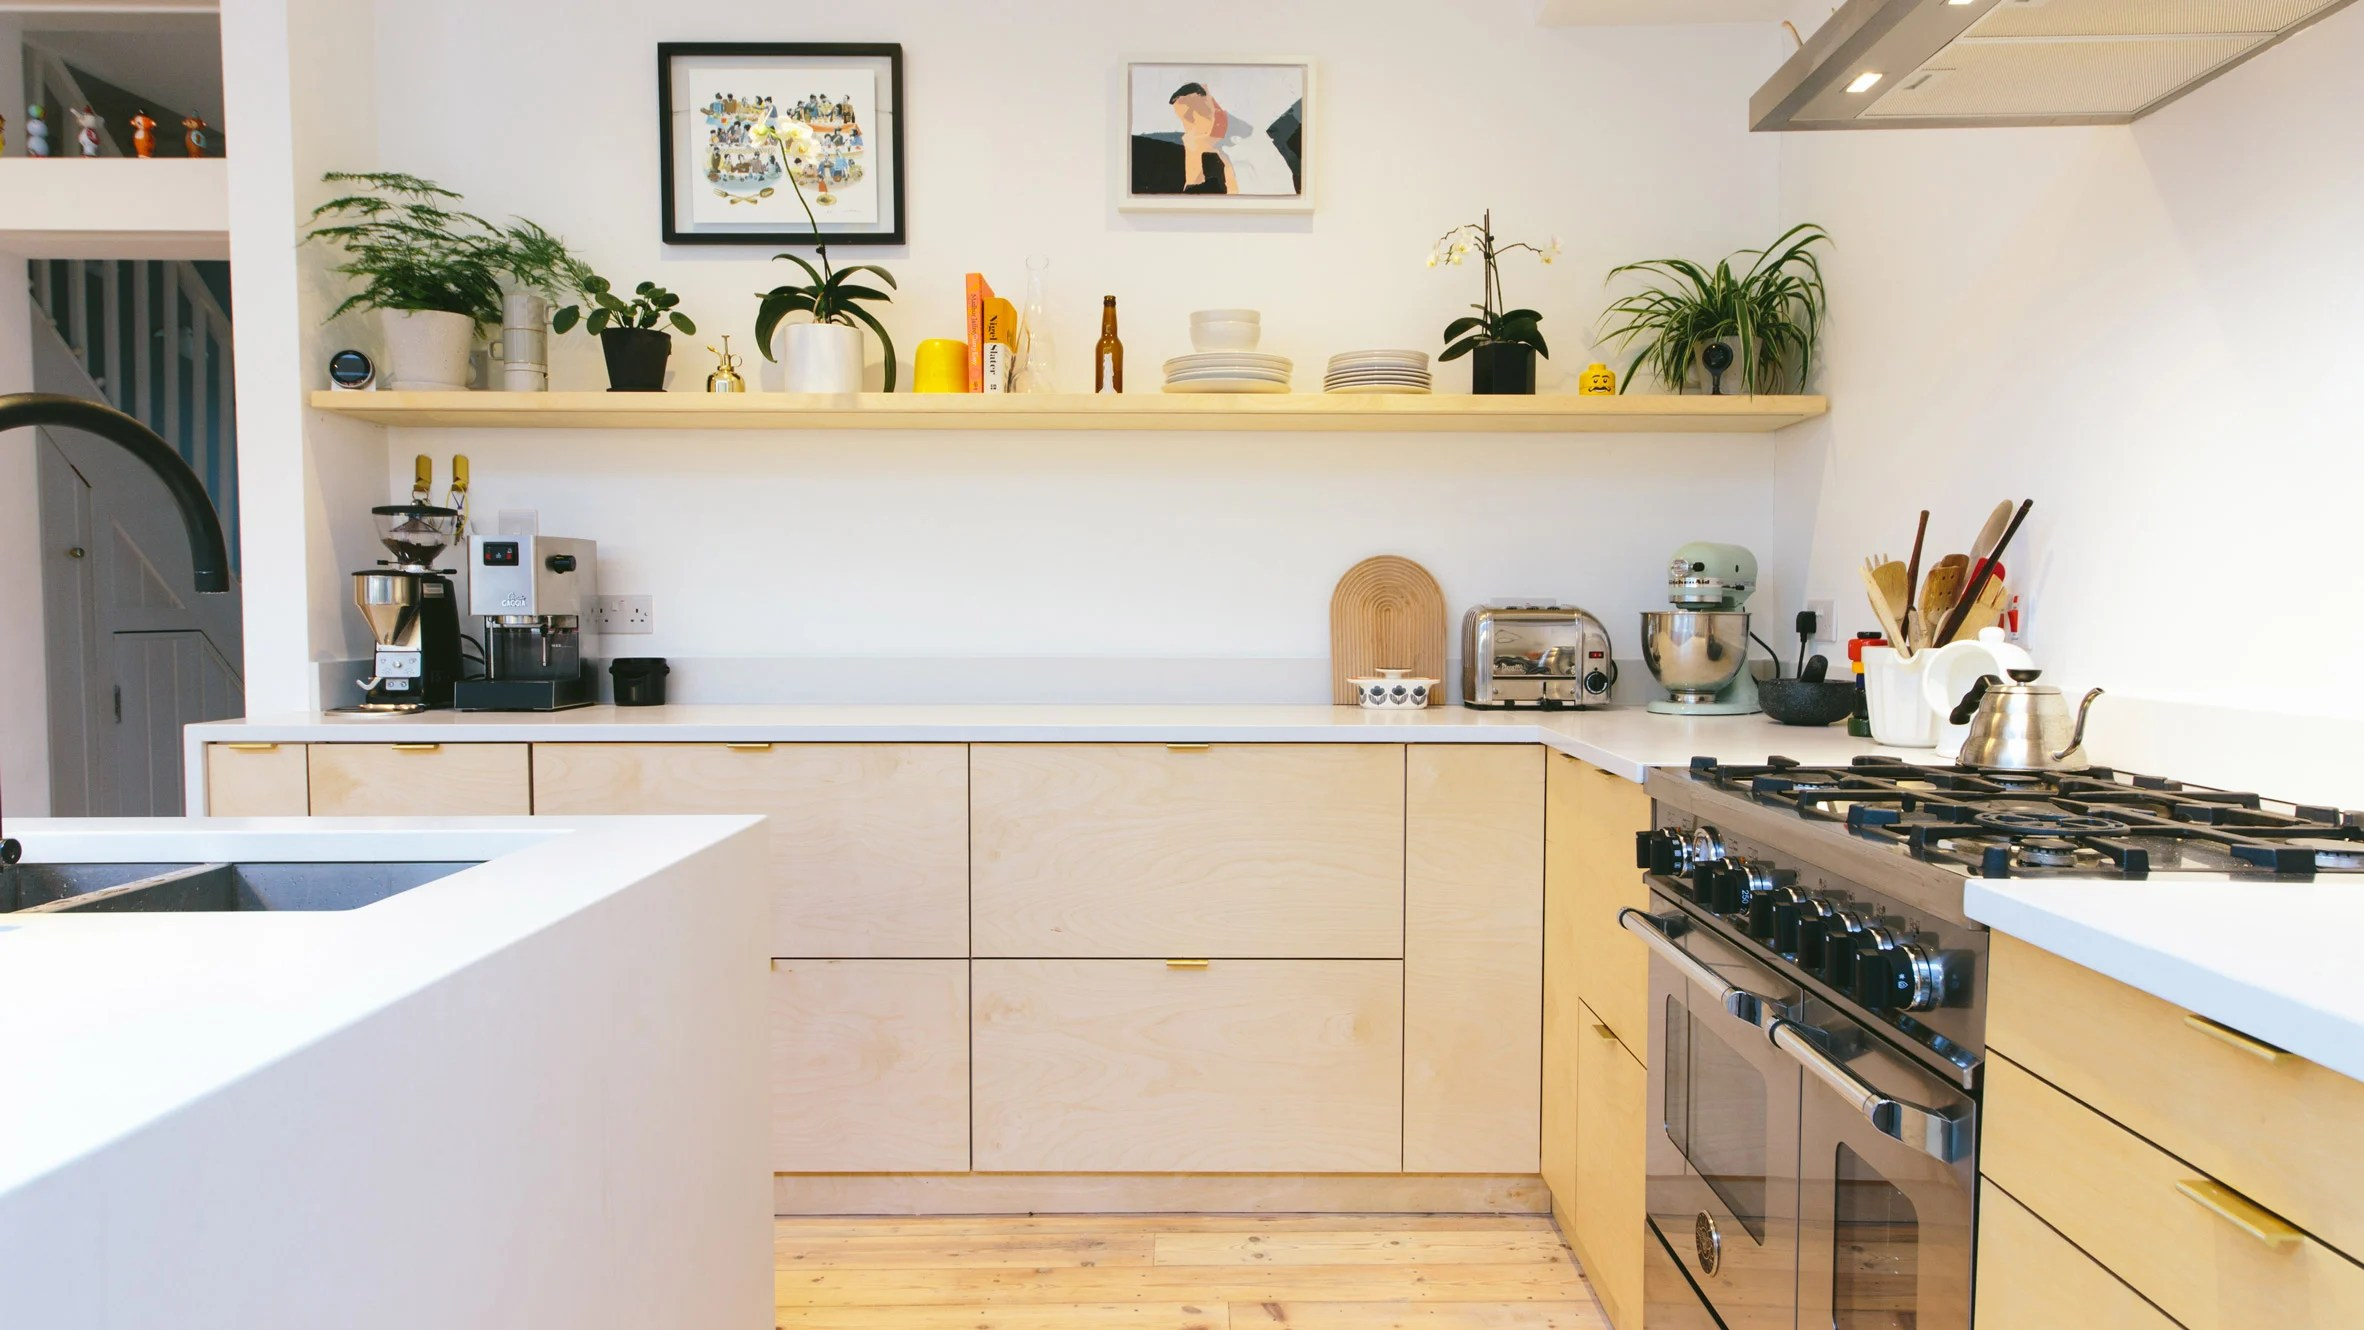 Ikea Küche Design Fronten Plykea Hacks Ikea S Metod Kitchens With Plywood Fronts